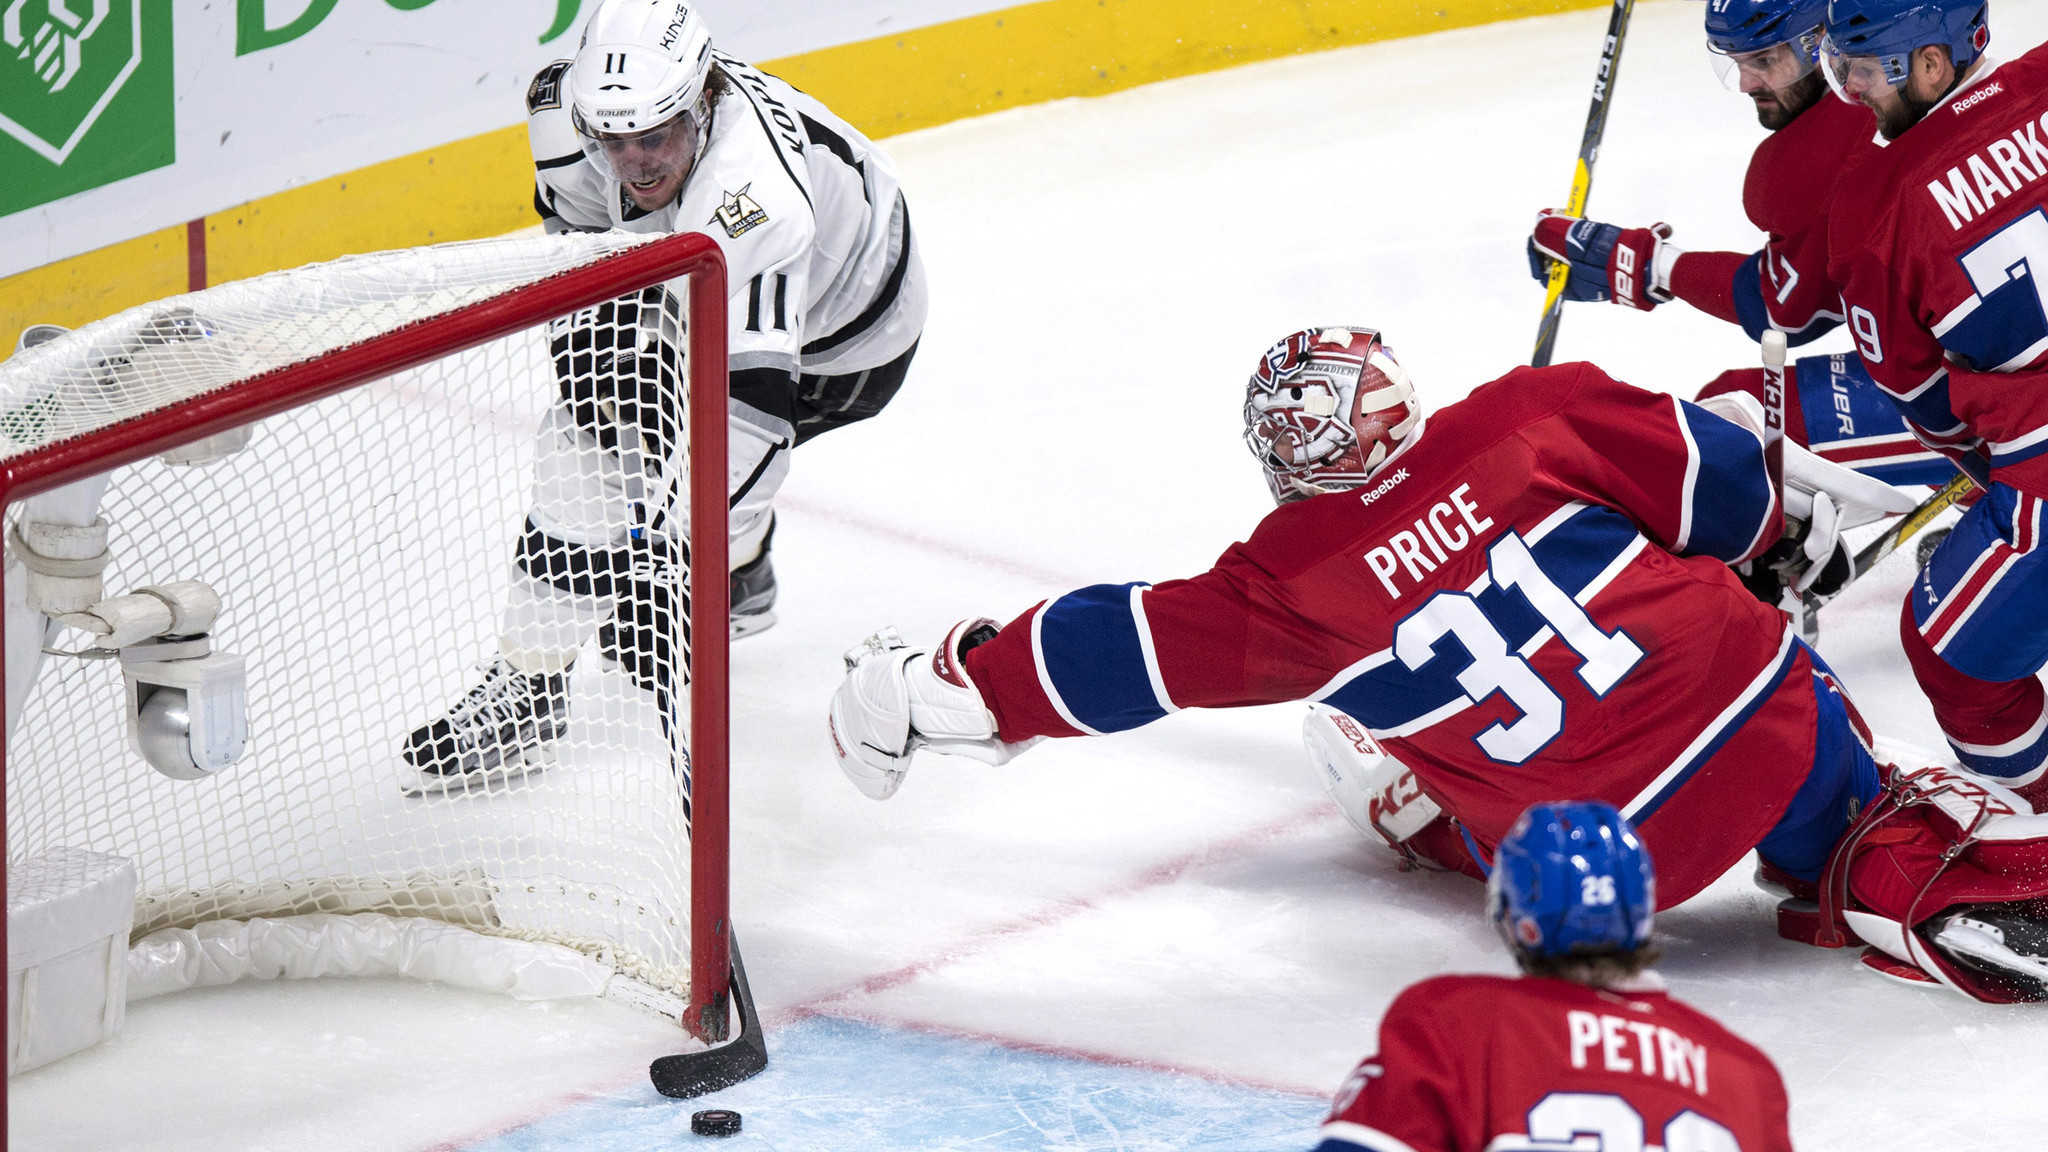 Carey price wallpapers montreal habs montreal hockey 9 html code - Carey Price Wallpapers Montreal Habs Montreal Hockey 9 Html Code 32